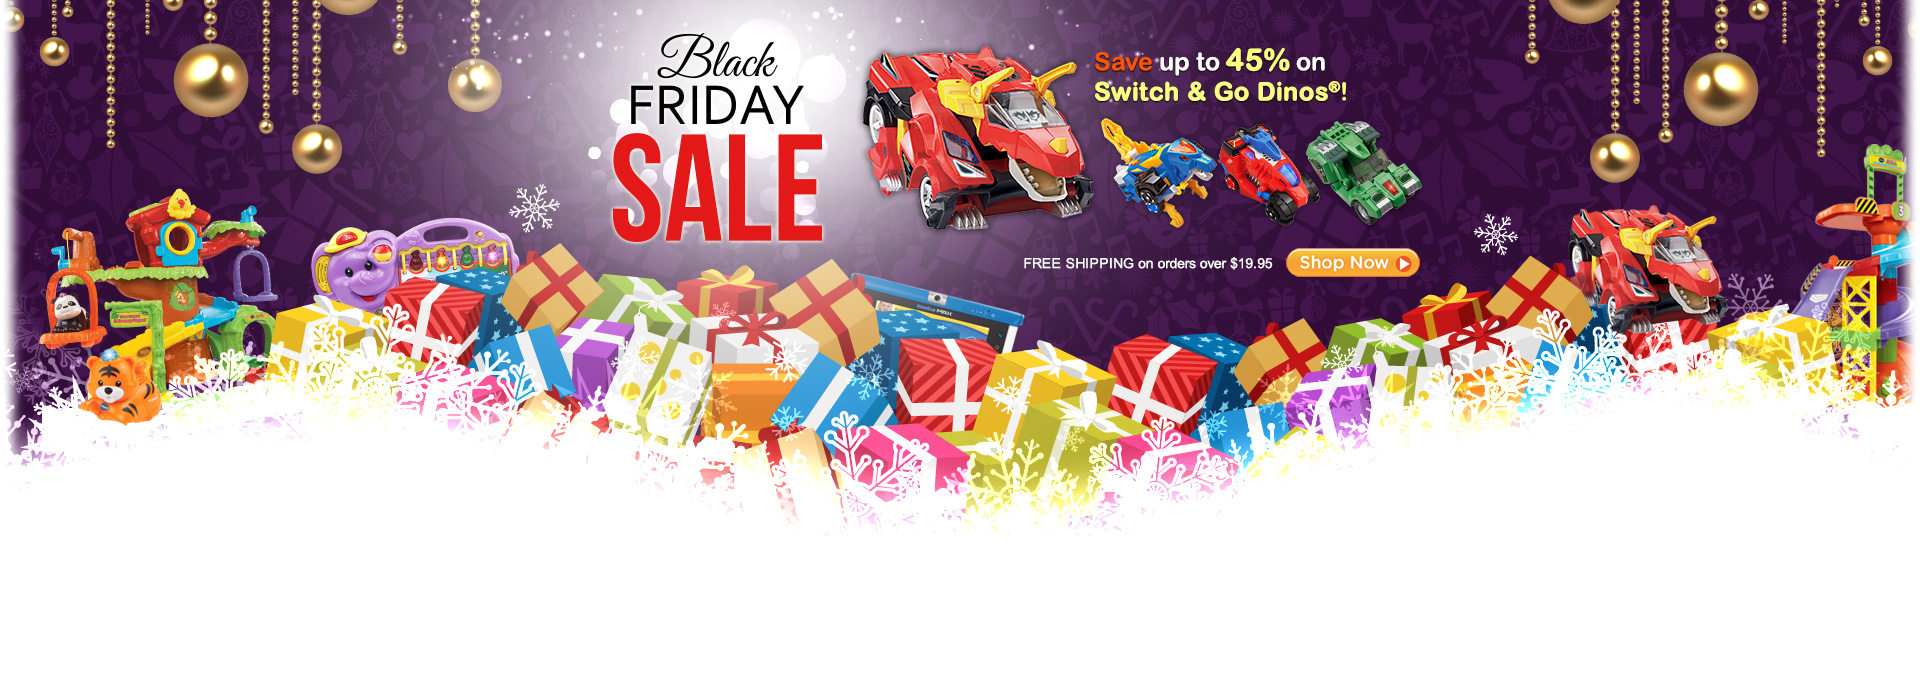 Black Friday Sale - Save up to 45% on Switch & Go Dinos!